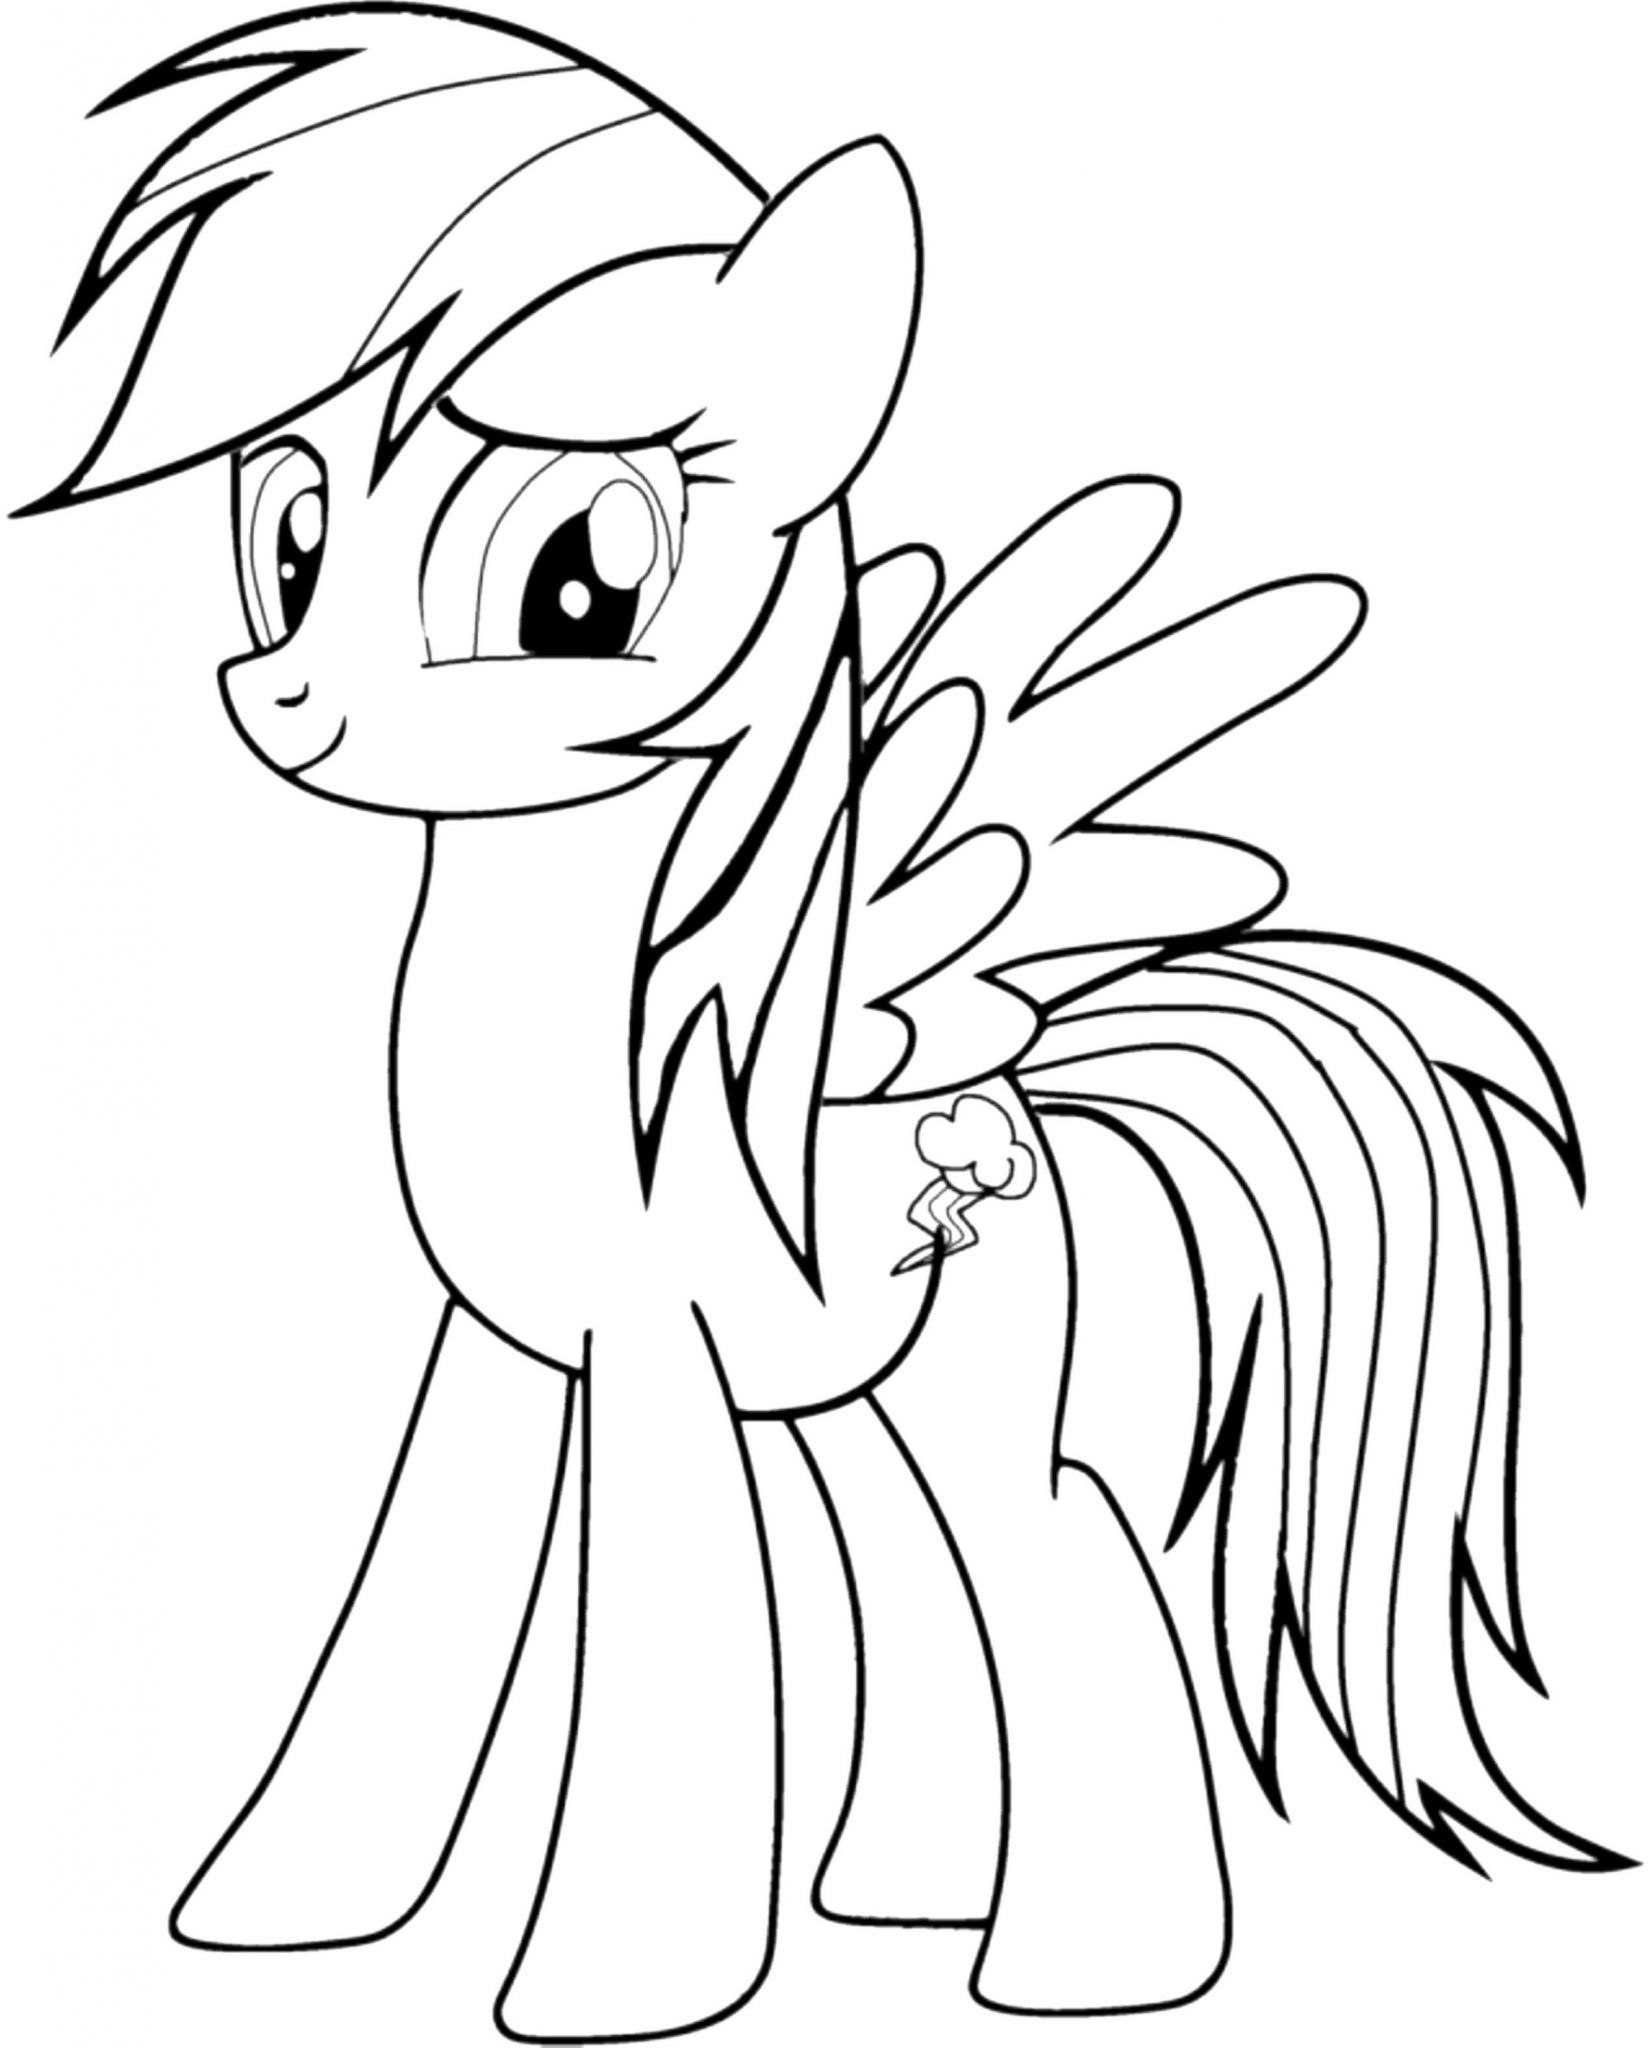 Rainbow Dash Coloring Pages Free Bestappsforkids